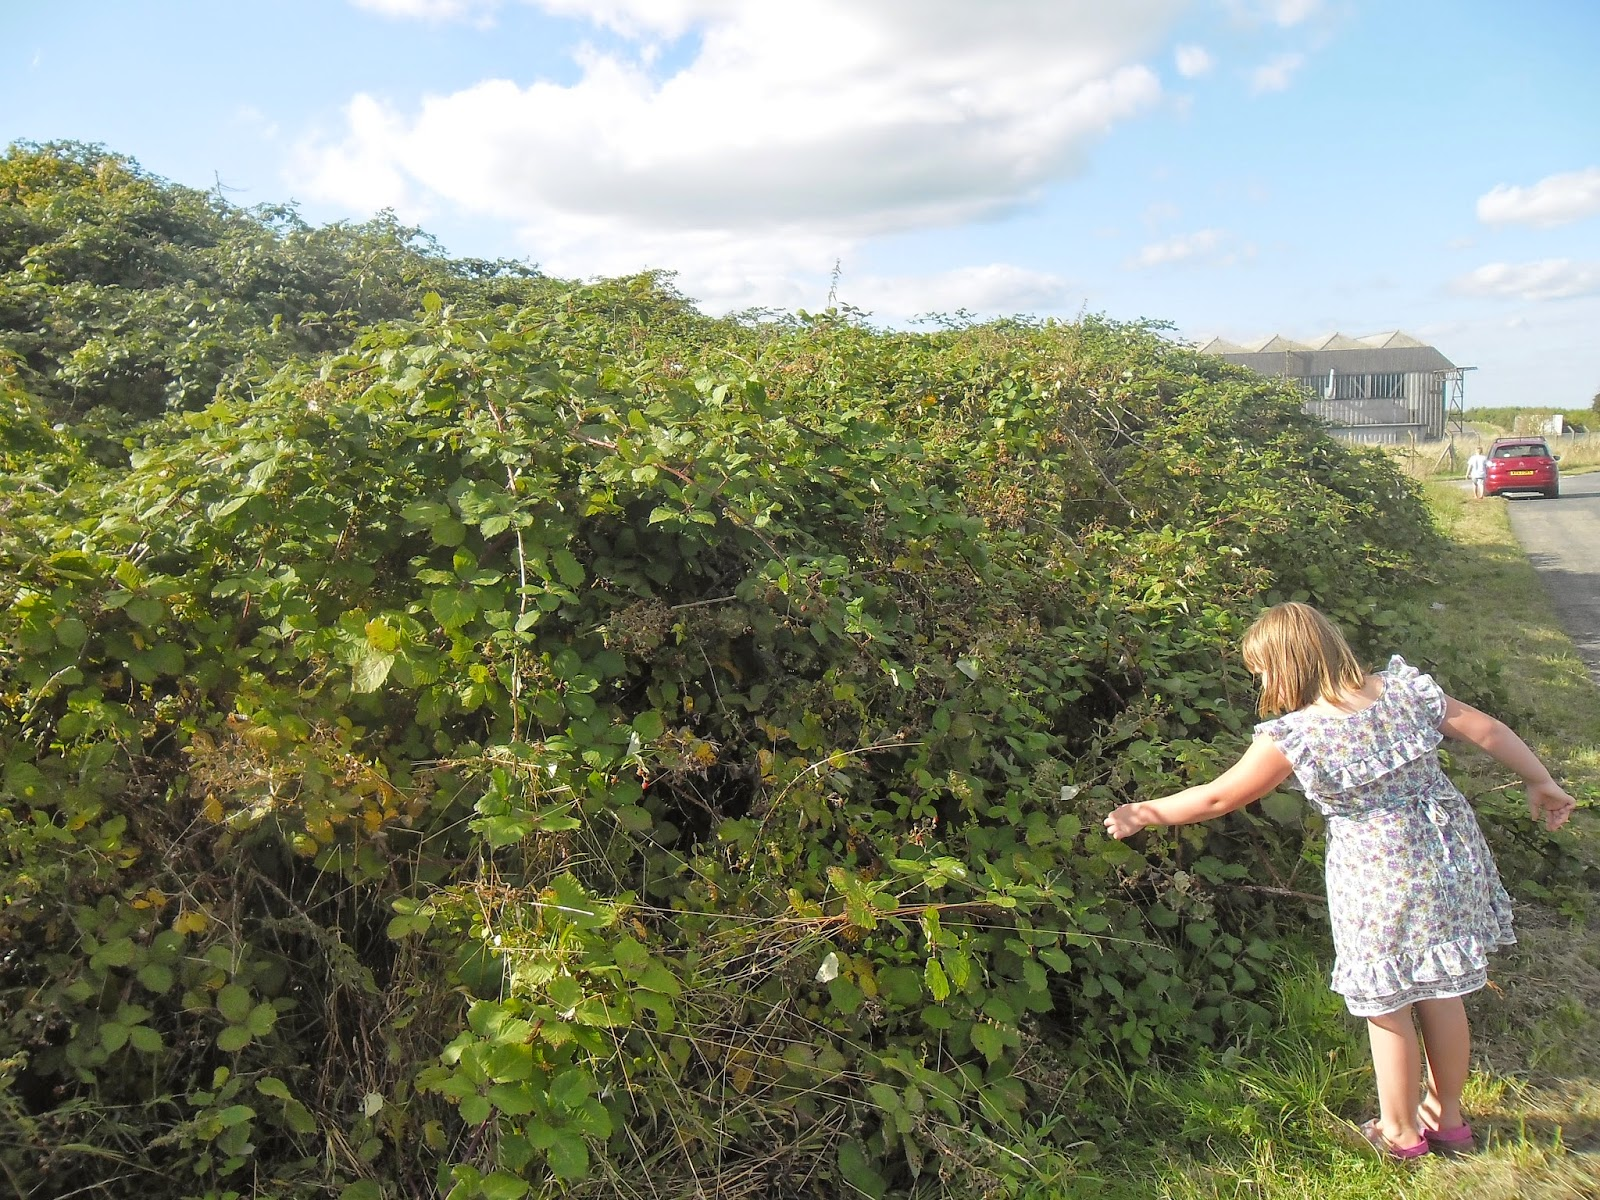 this has got to be the biggest bramble bush in the world